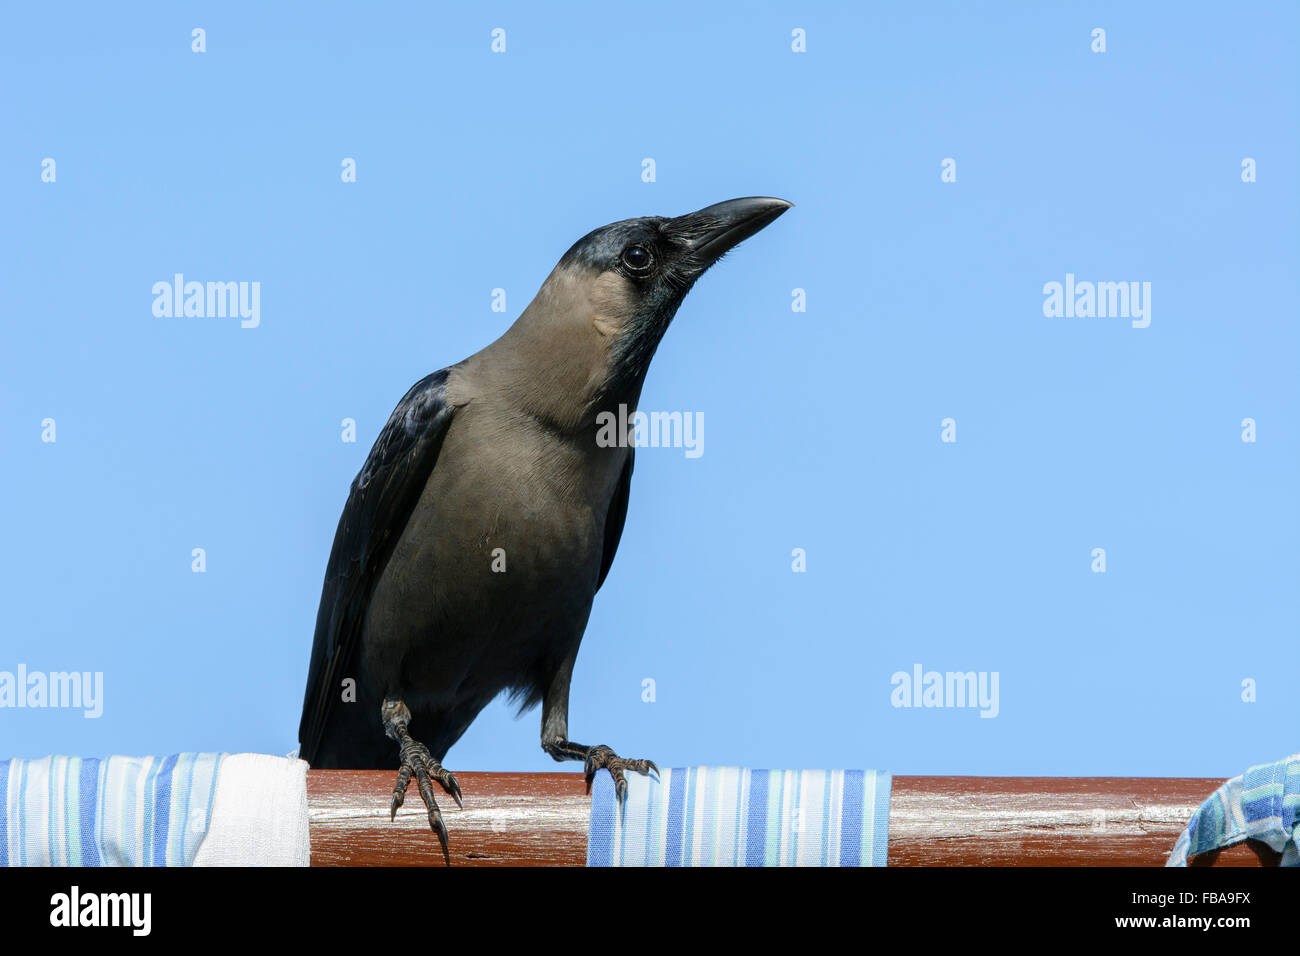 Close up of an Indian House Crow (Corvus splendens), one of the most common birds in Goa, India, Asia. - Stock Image